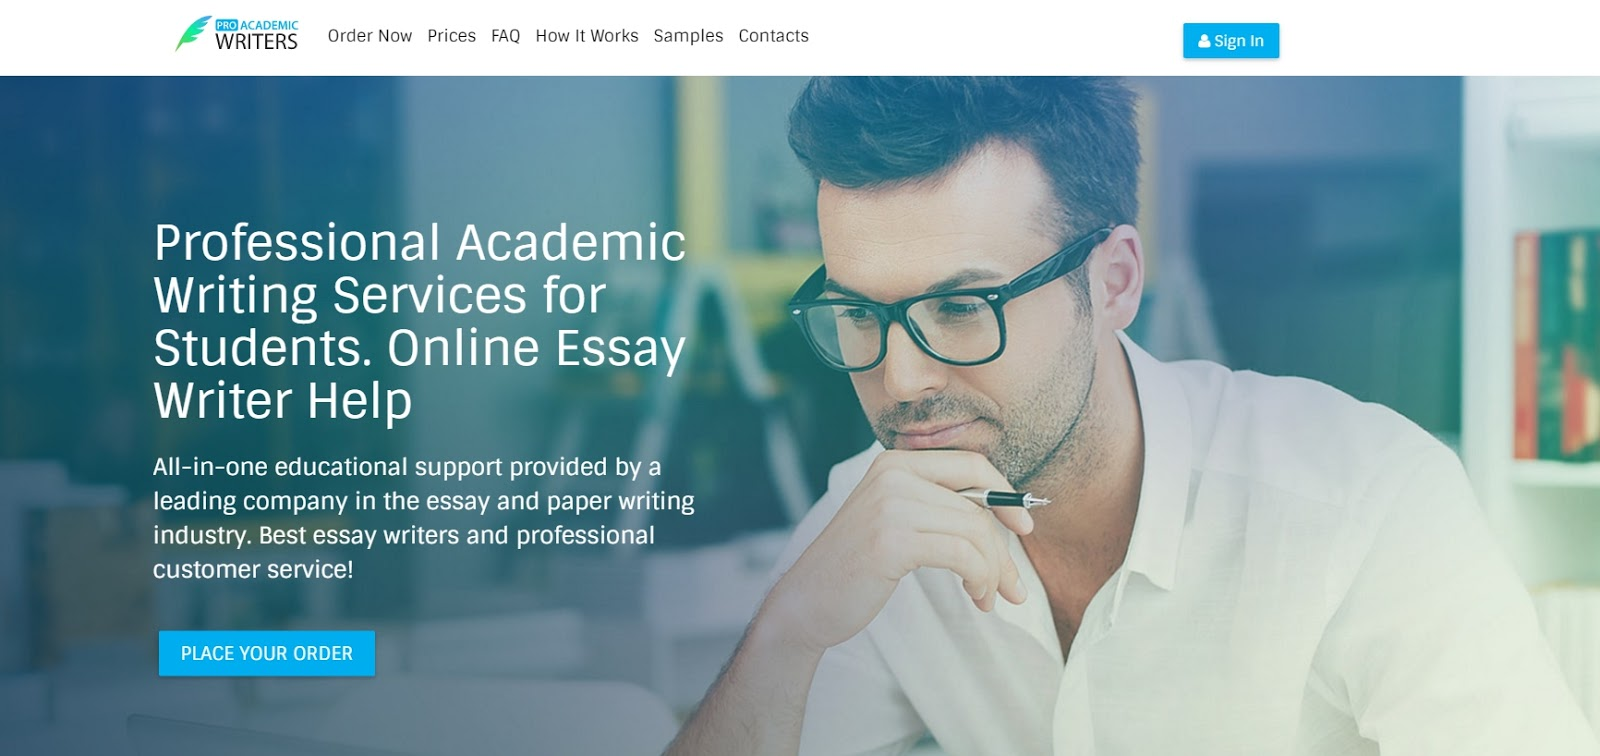 007 Essay Writing Services Example Pro Academic Stupendous Reddit Custom Canada Reviews Uk Full